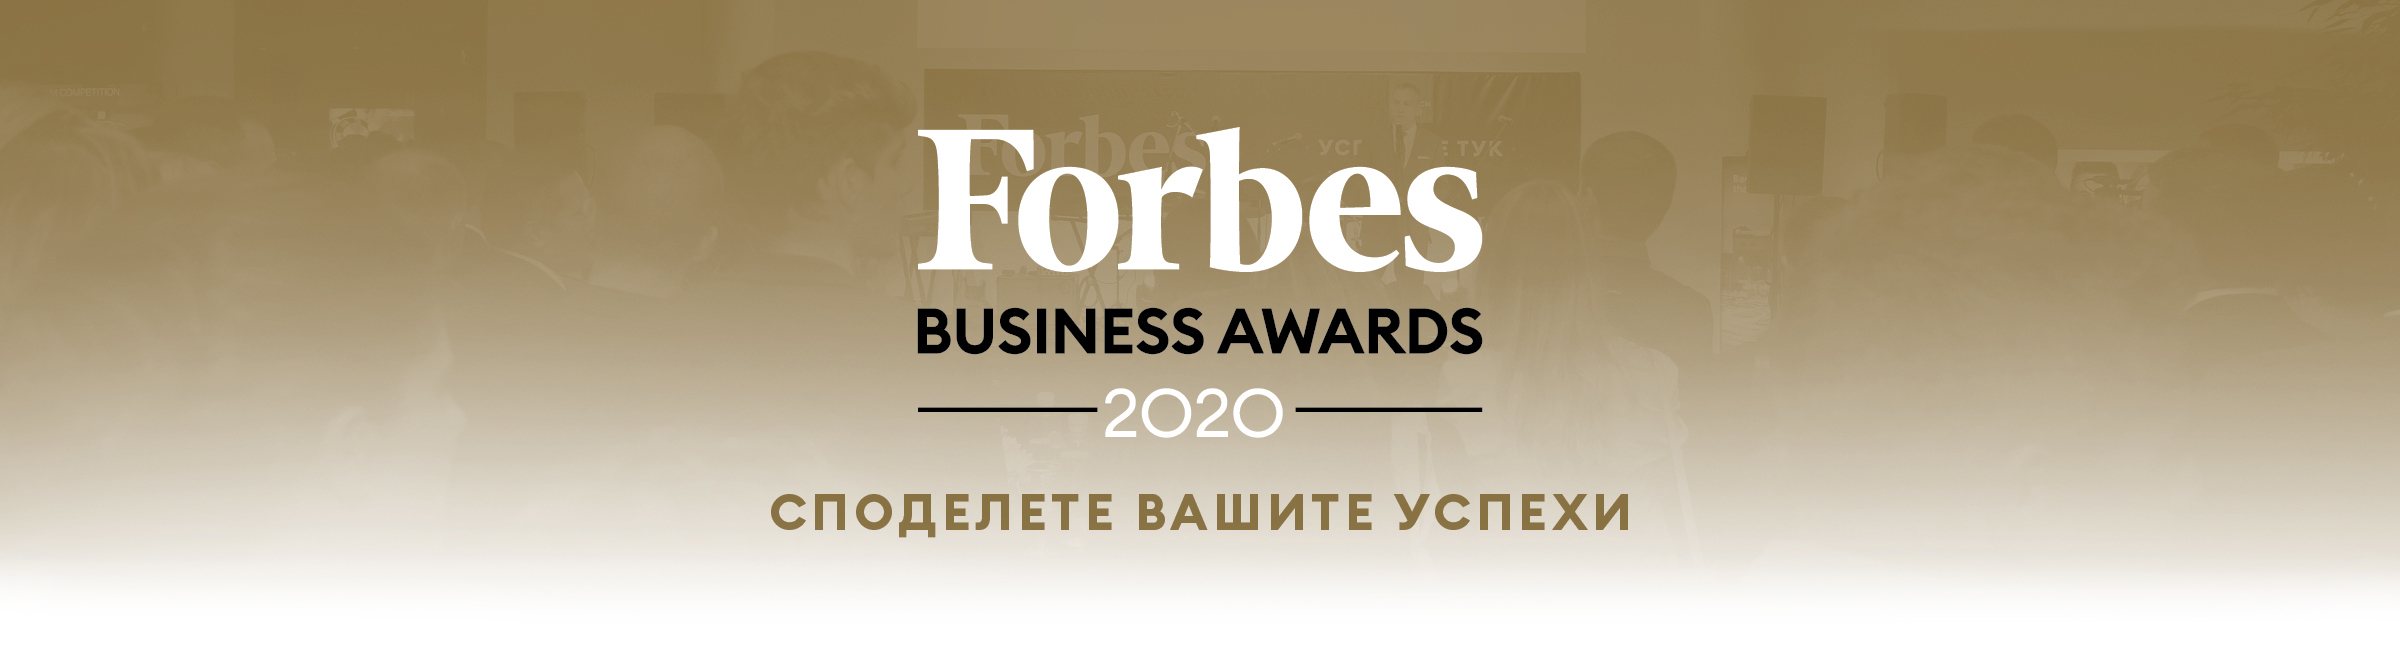 Forbes-business-awards-2020-2400x650_new